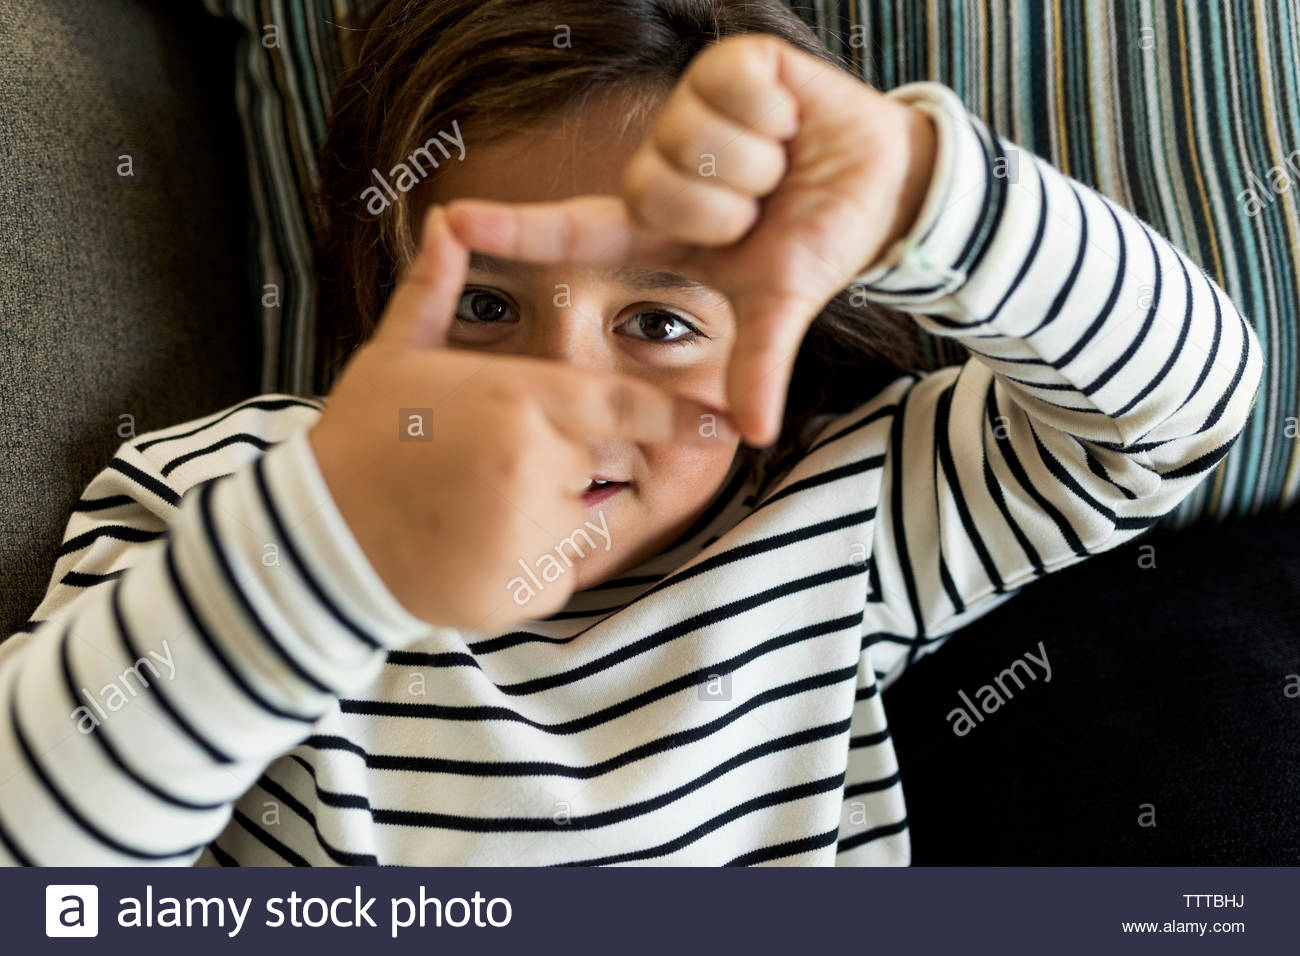 Cute little boy with striped top making a rectangle with his hands Stock Photo